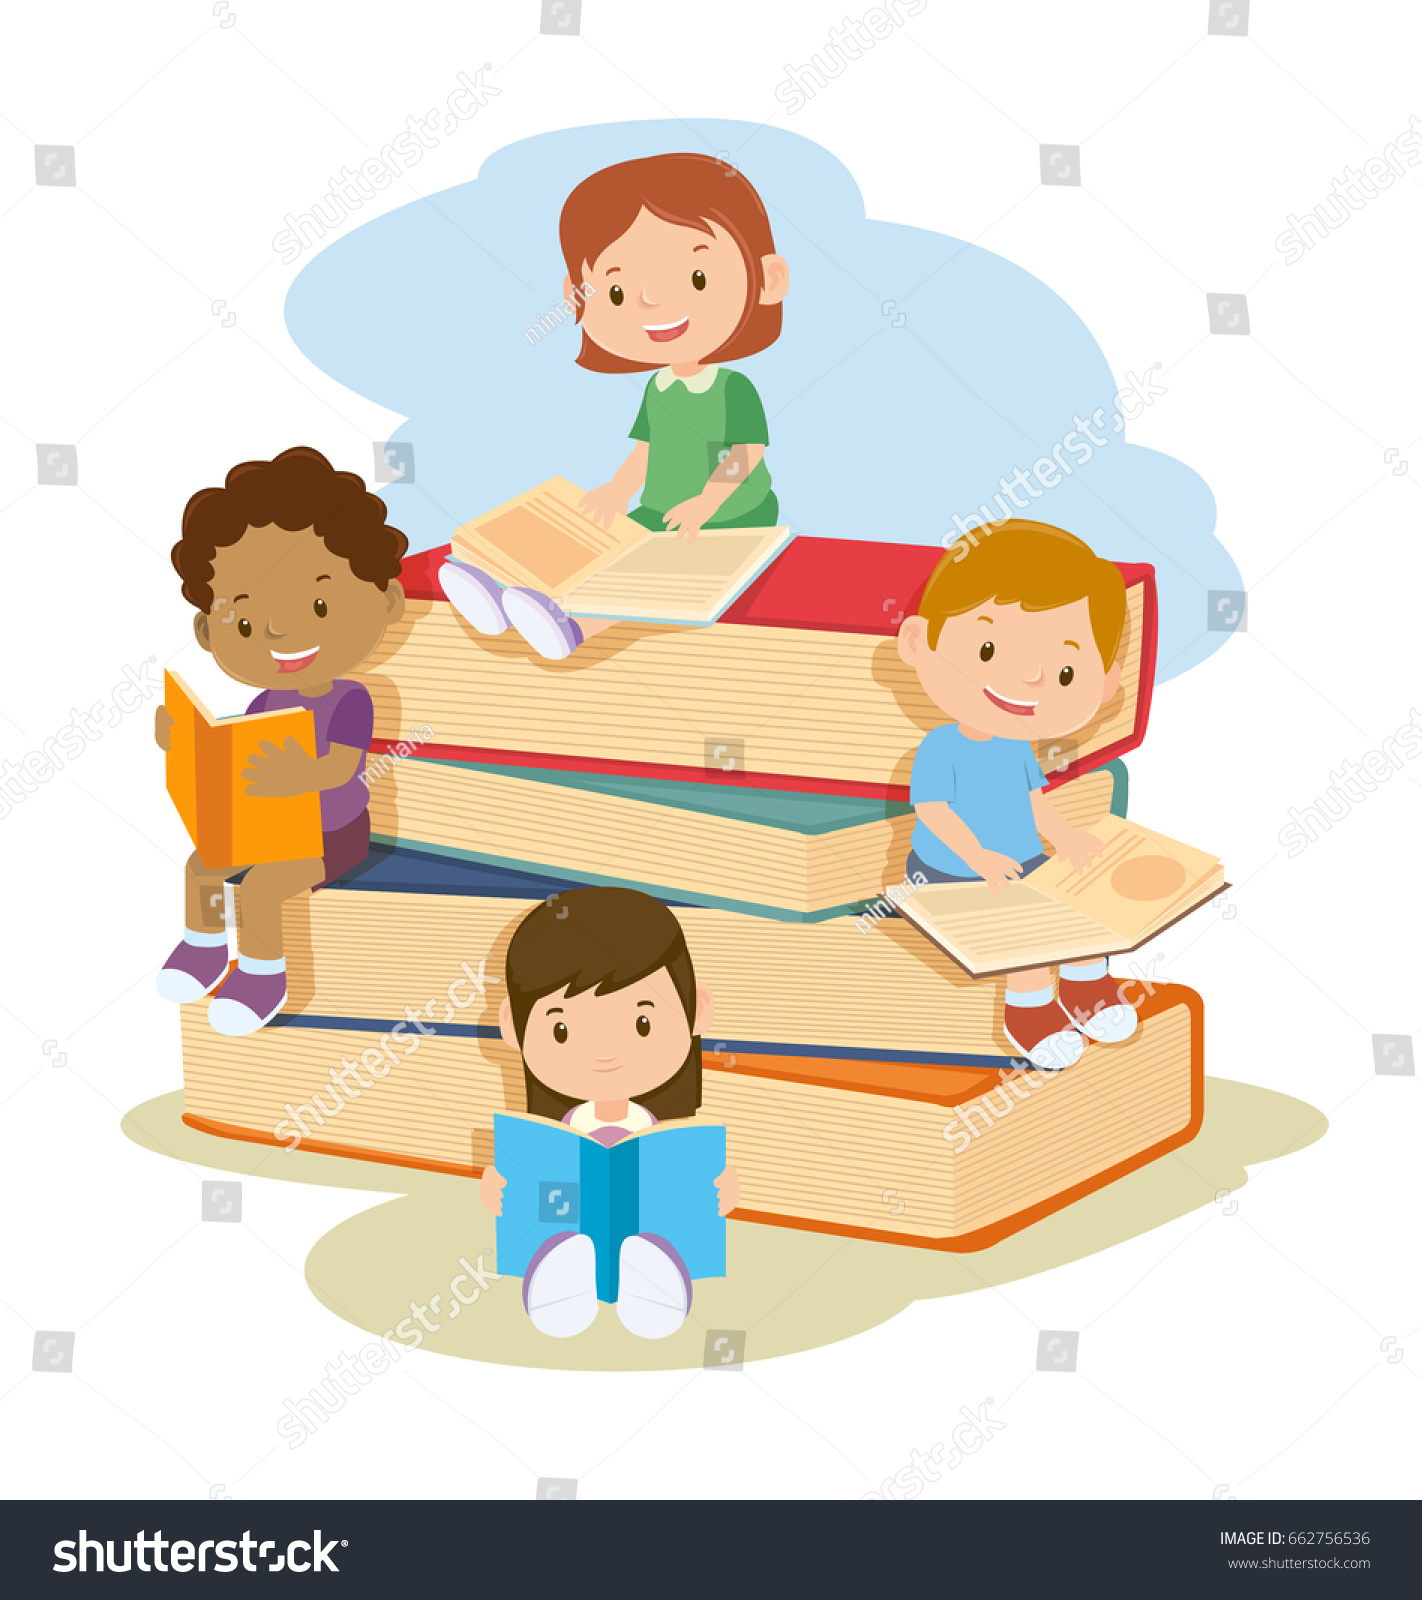 Image result for children learning reading clipart